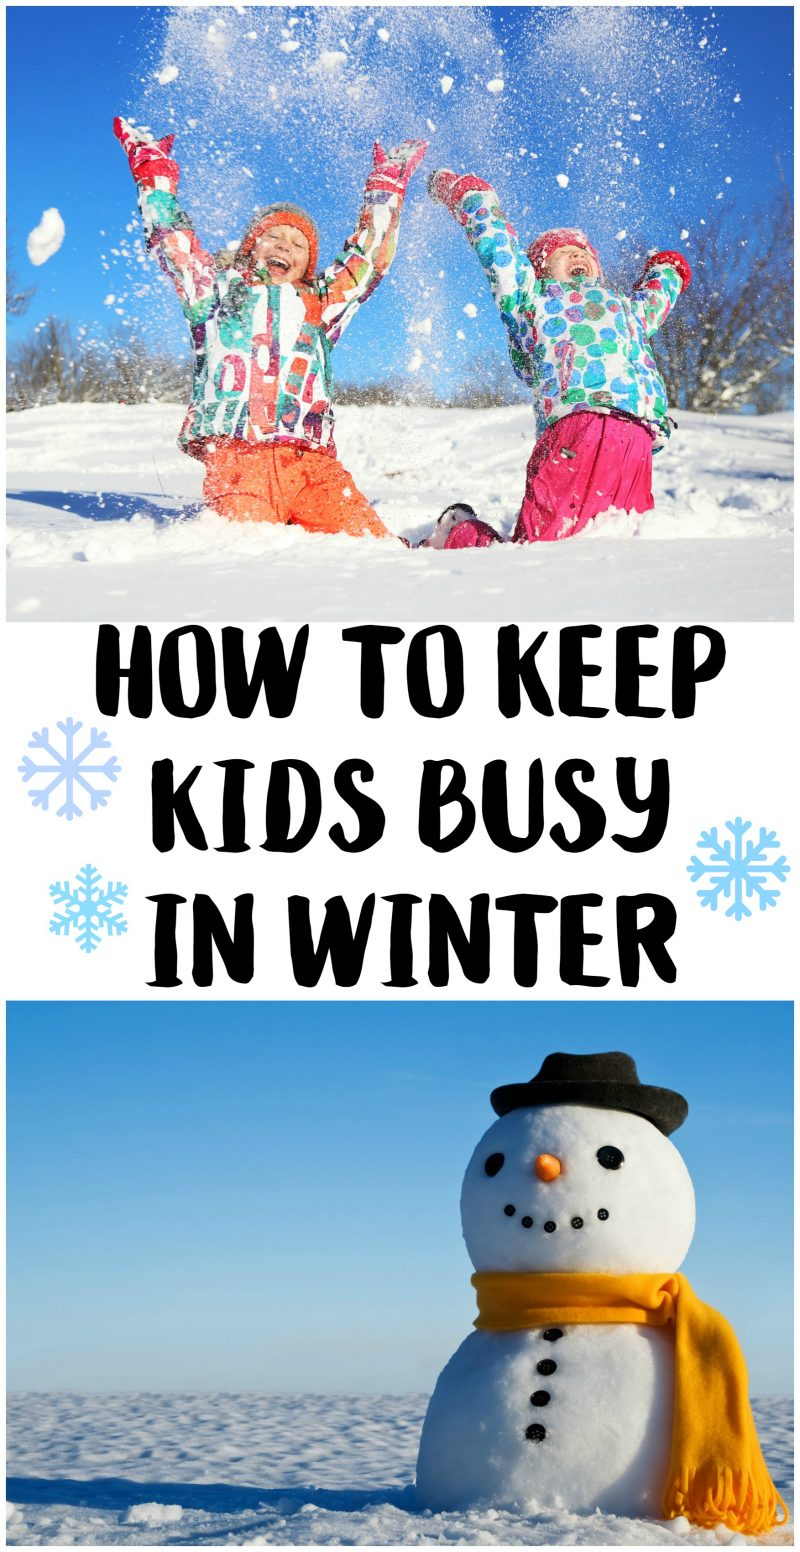 Snow and winter weather ruining your kid's fun? These ideas for crafts and indoor activities you can do at home are a lot of fun and will keep the boredom at bay until the sun comes back!